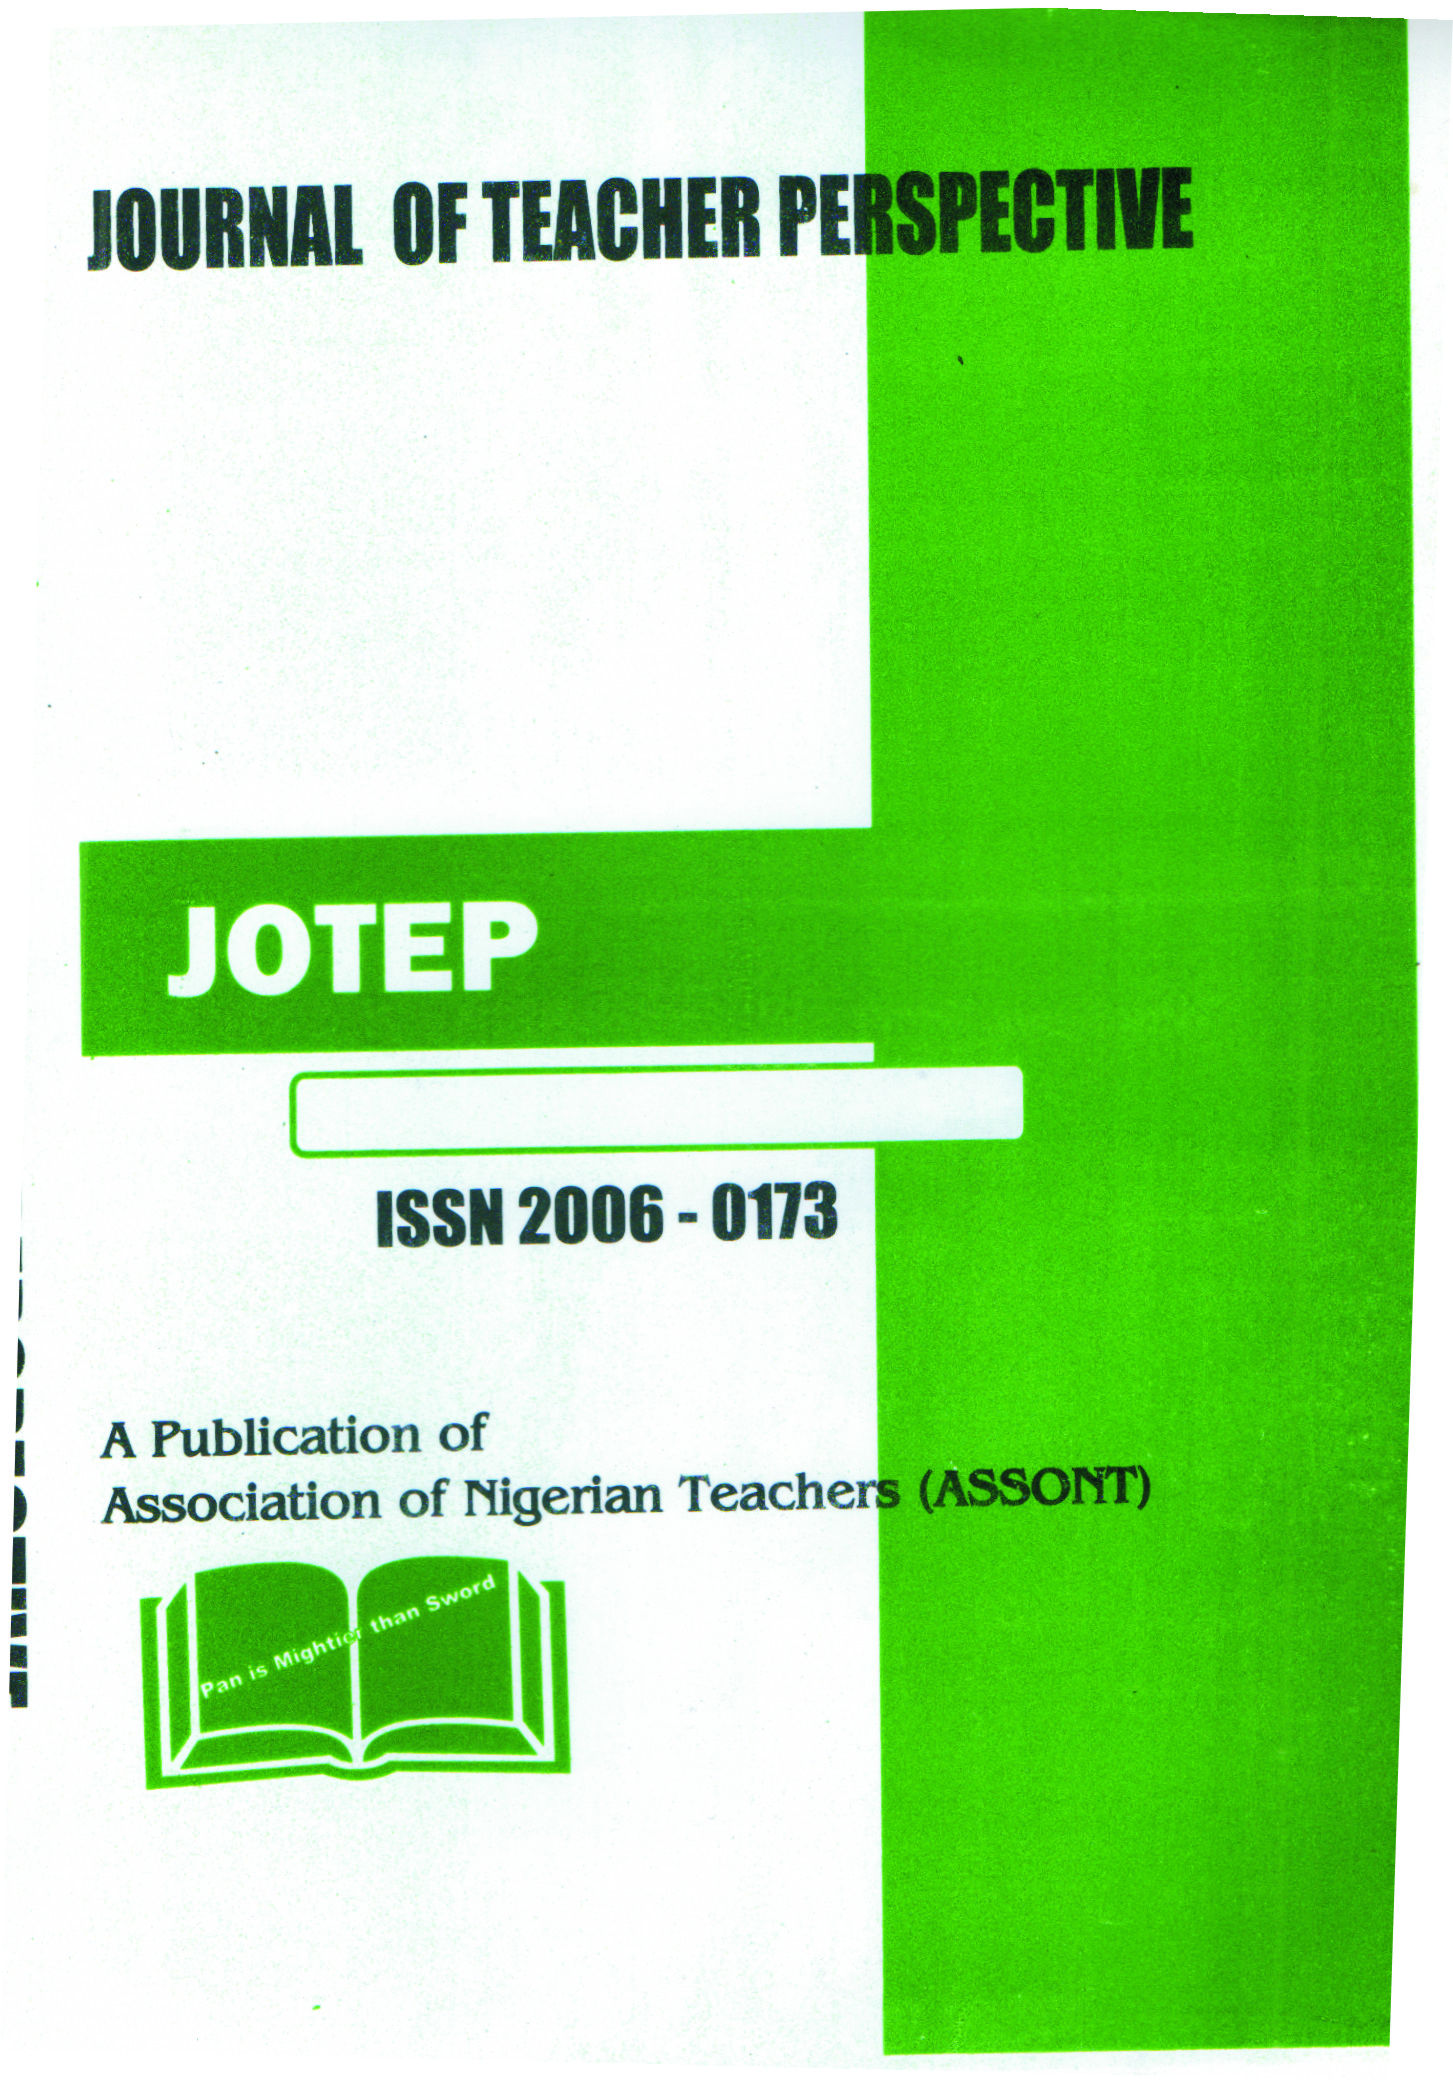 About Journal of Teacher Perspective